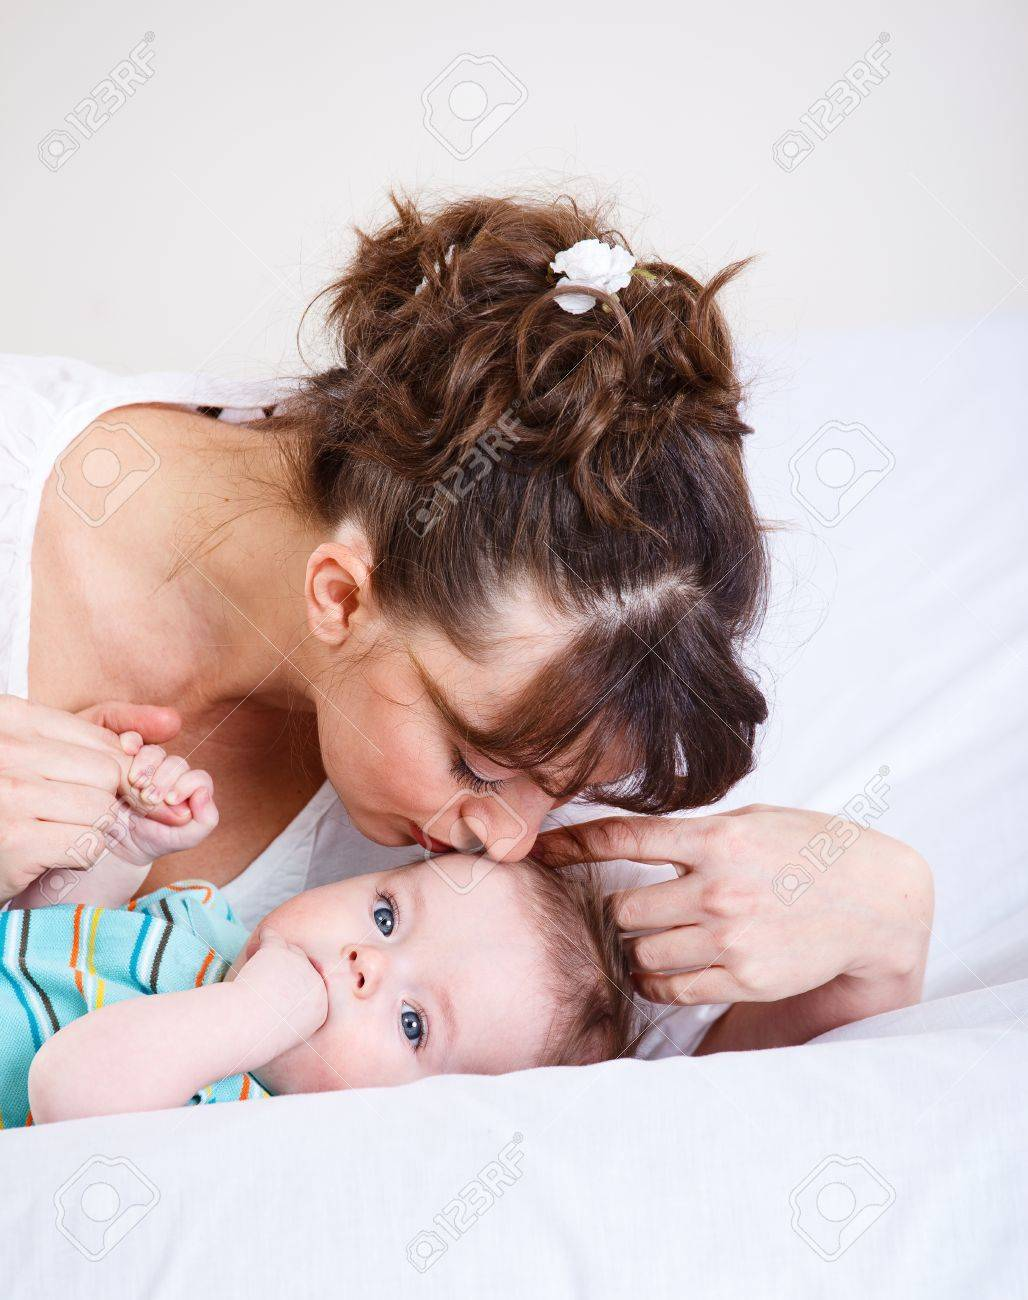 Woman kisses baby lying in bed Stock Photo - 9060838